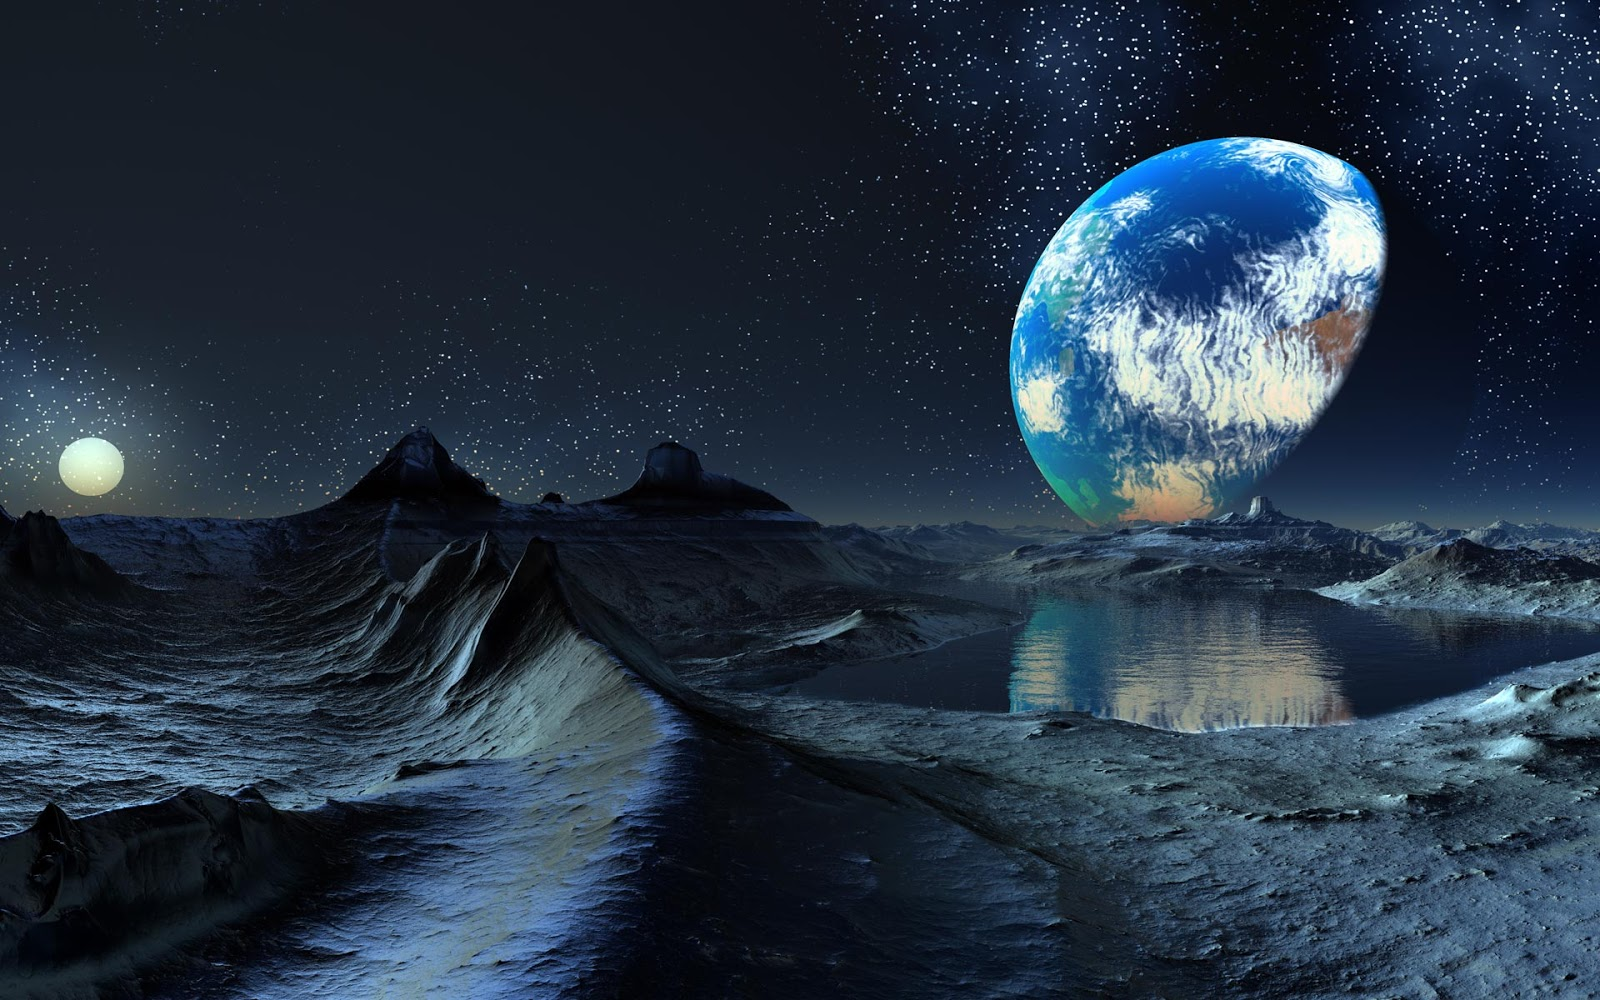 Desktop Backgrounds 4U: Planets